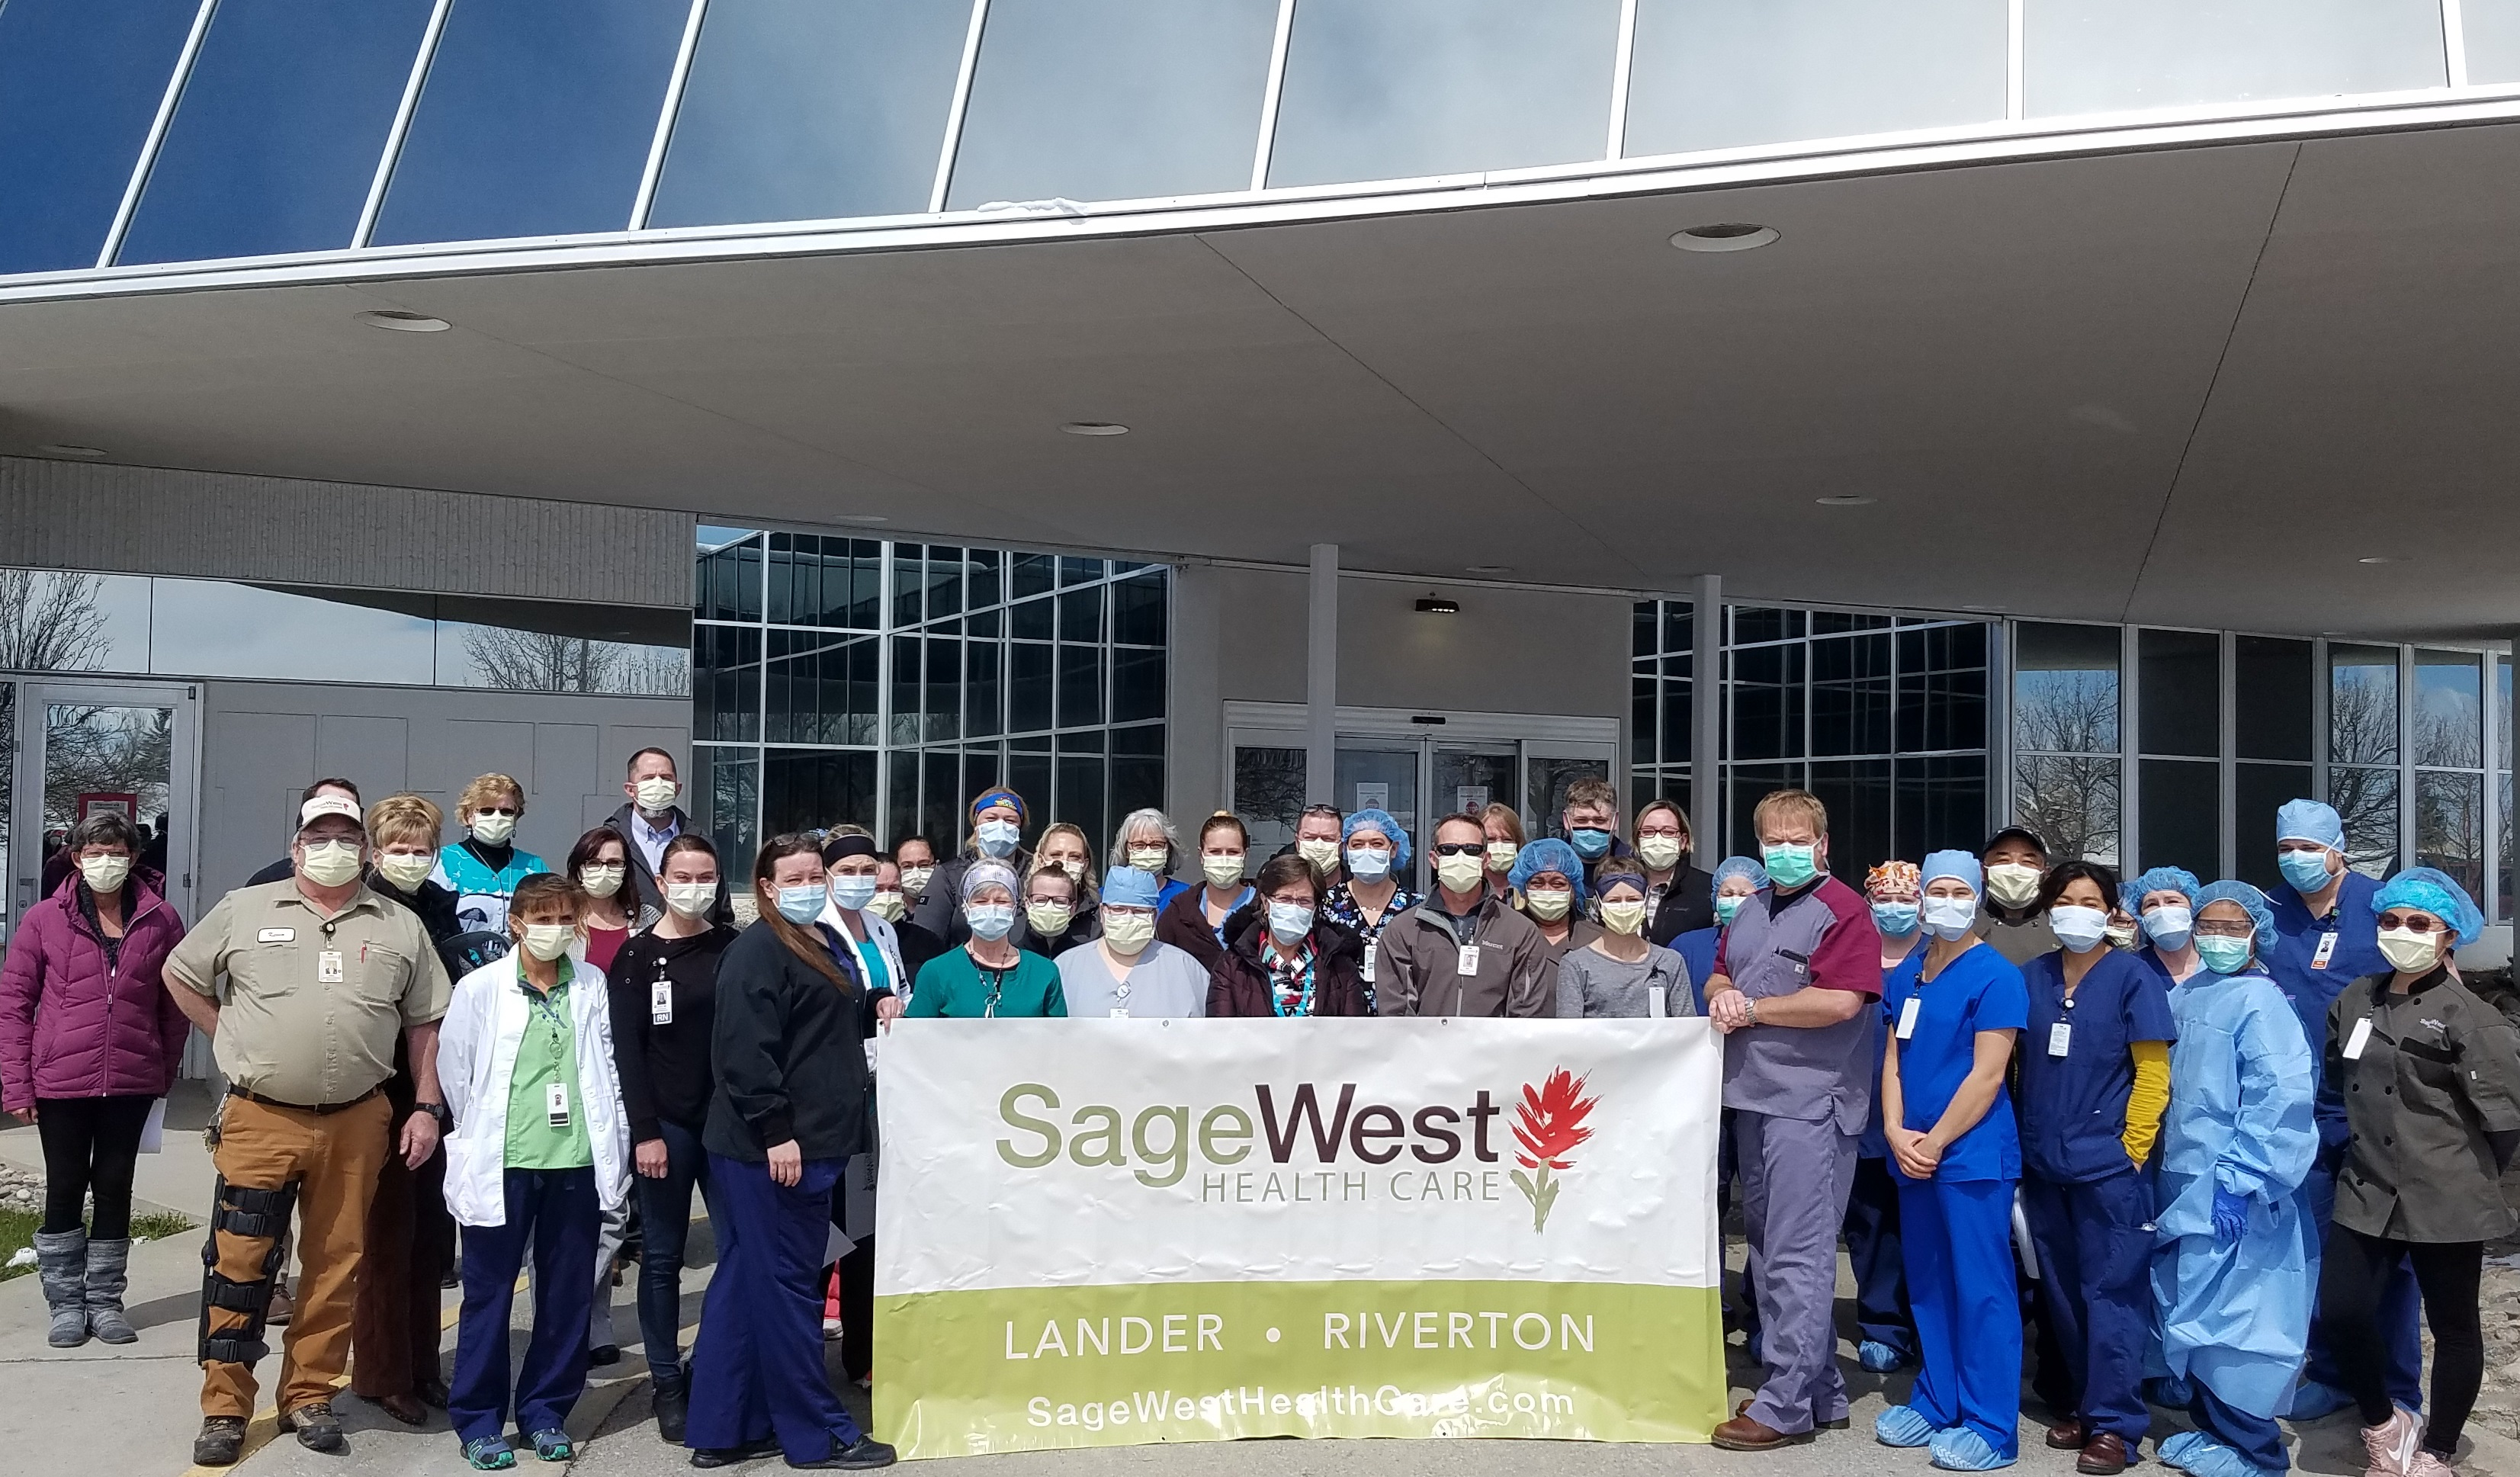 SageWest Ranked #1 Hospital in Wyoming